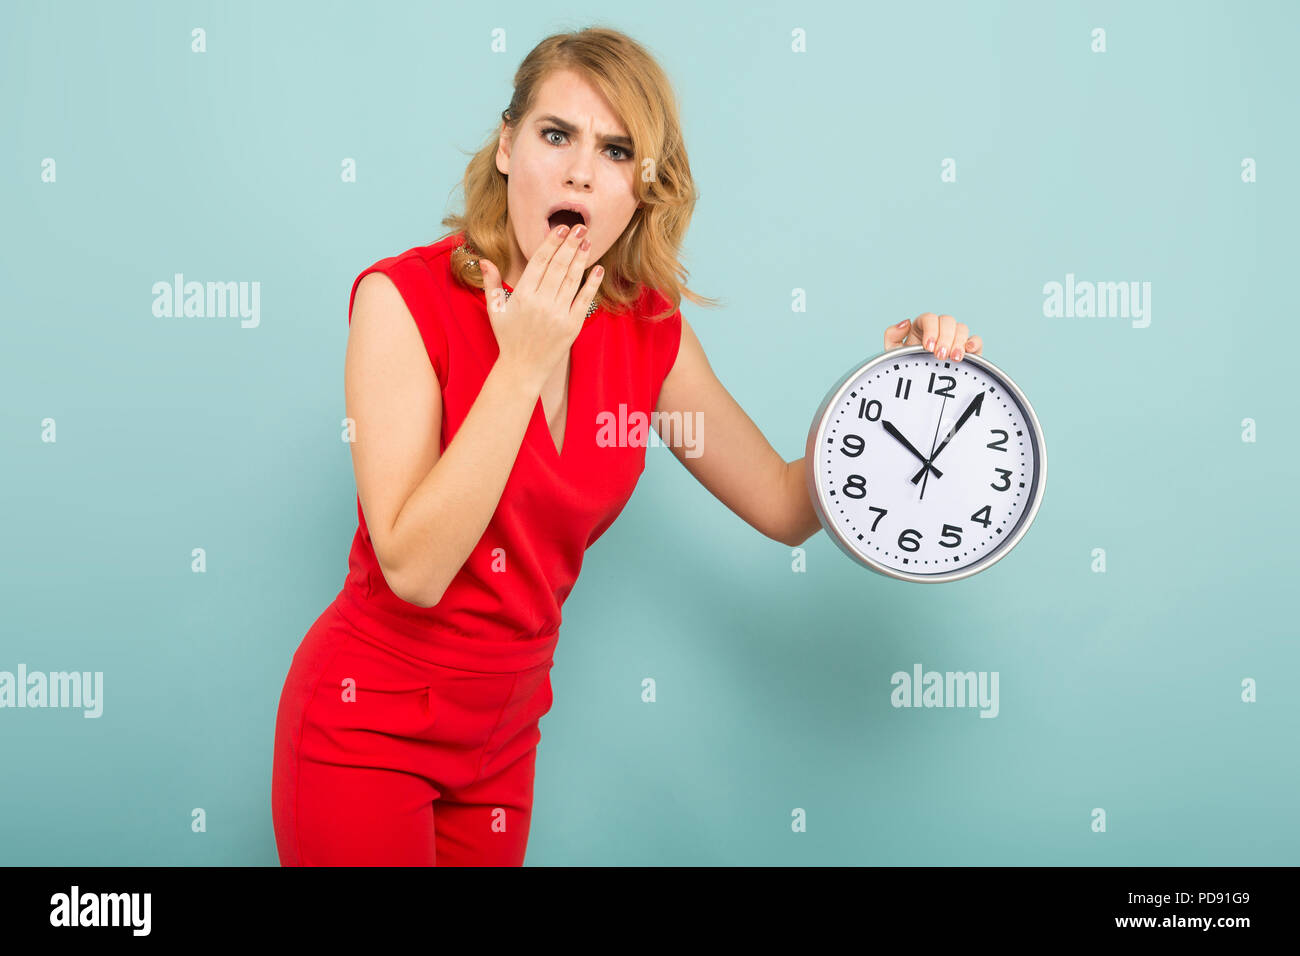 Attractive shocked woman with clocks - Stock Image